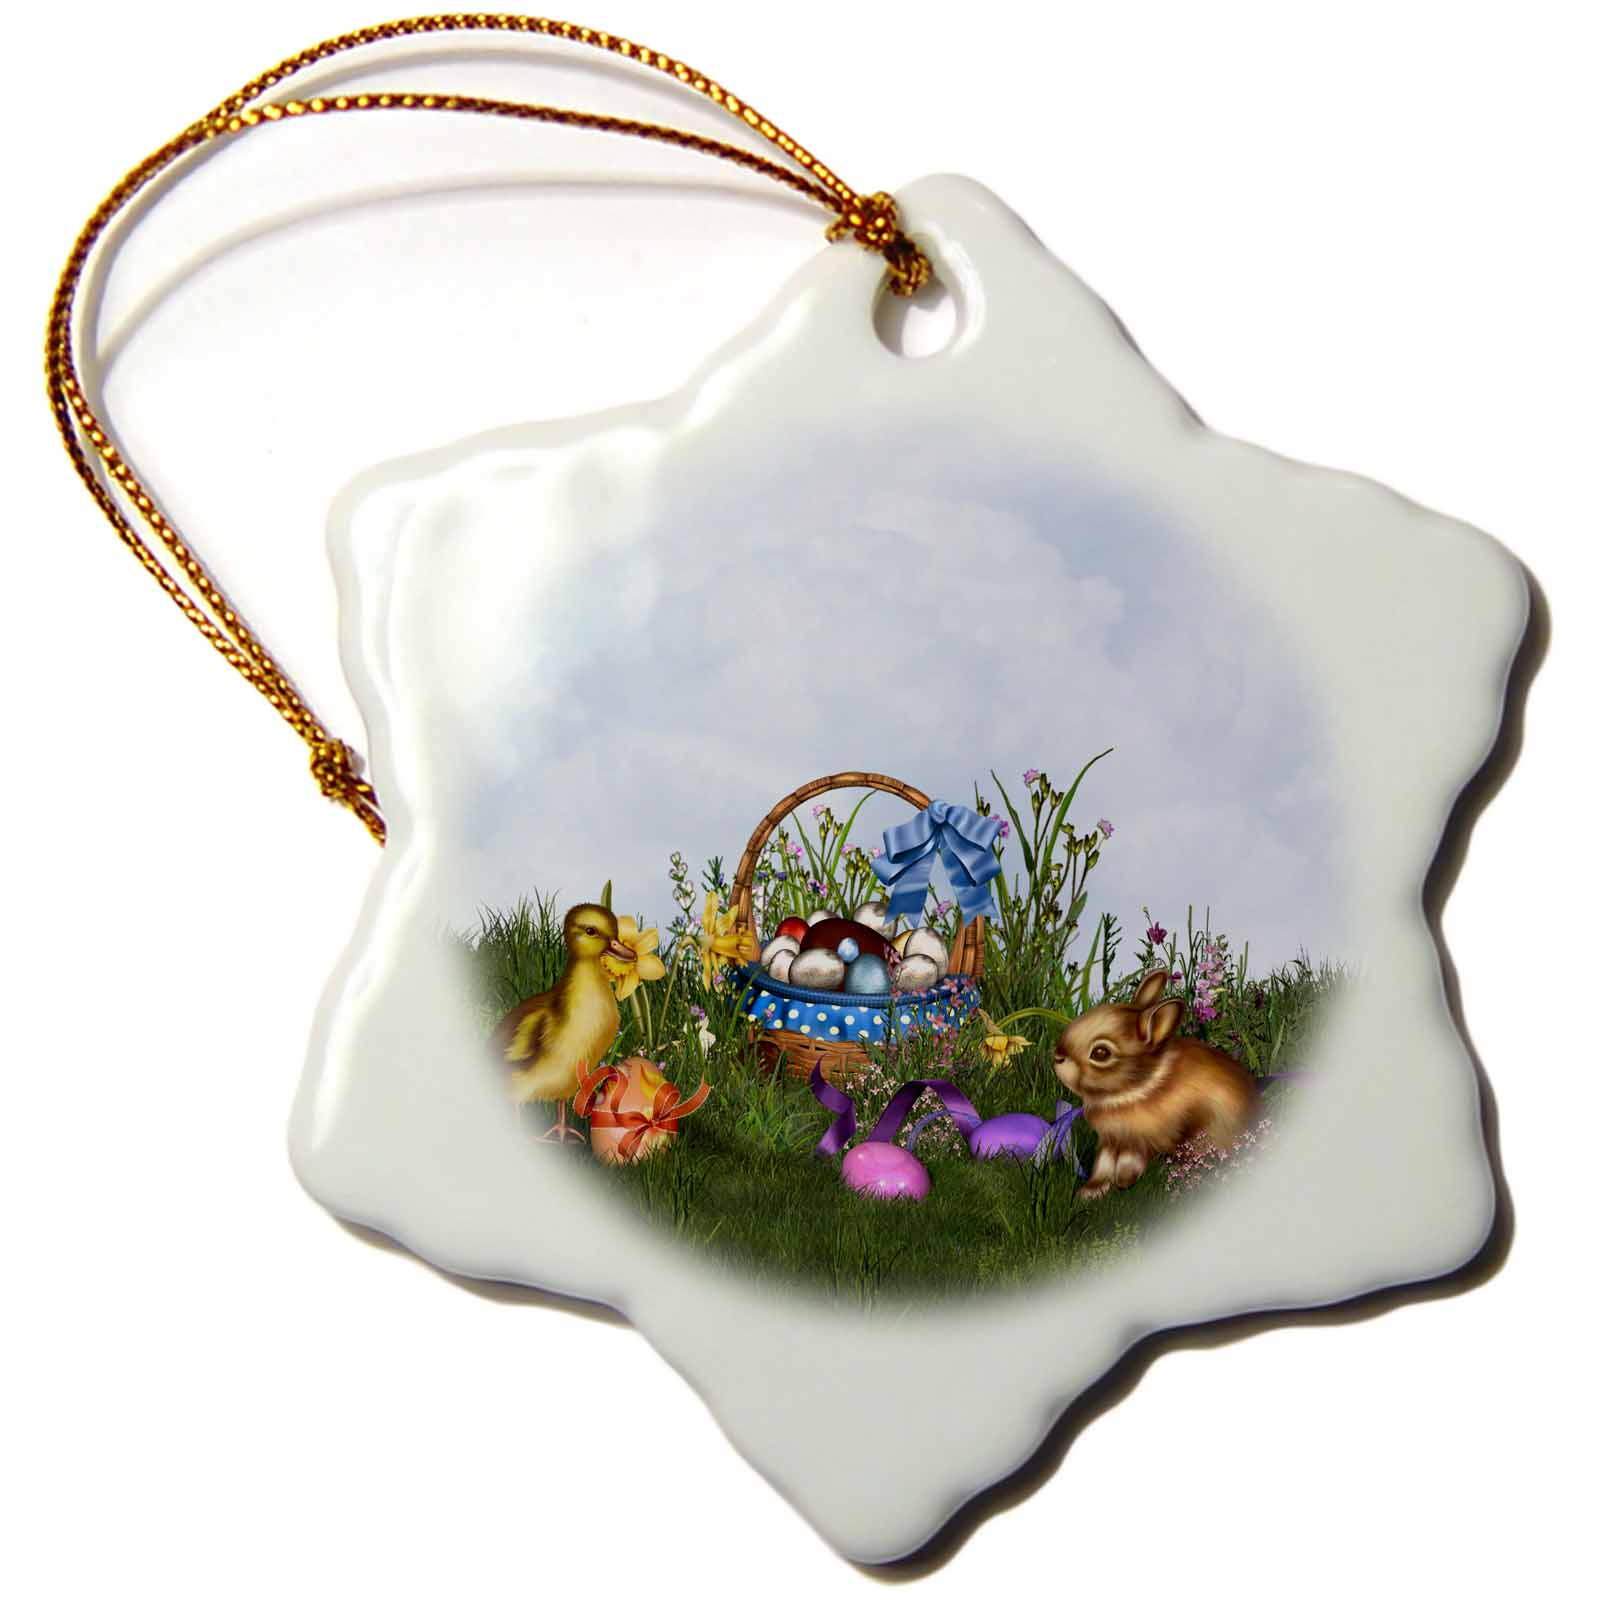 3dRose  The Easter bunny sitting in the meadow with Easter basket and chicken, Snowflake Ornament, Porcelain, 3-inch